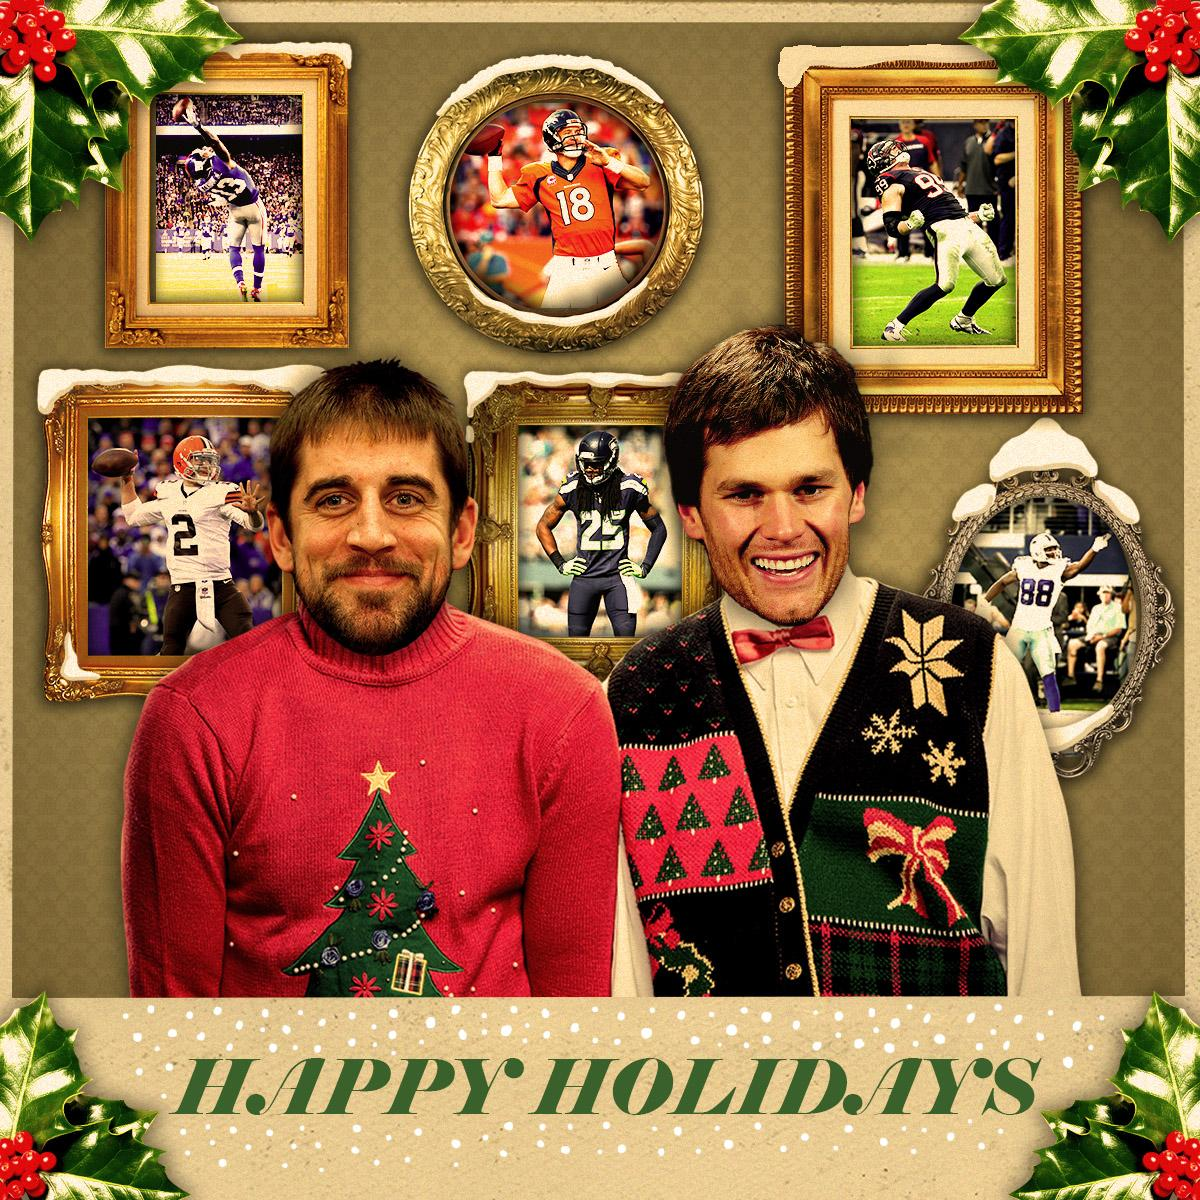 rt nfl from all of us to all of you merry christmas and happy holidays pictwittercomf21moahutb - Nfl On Christmas 2014